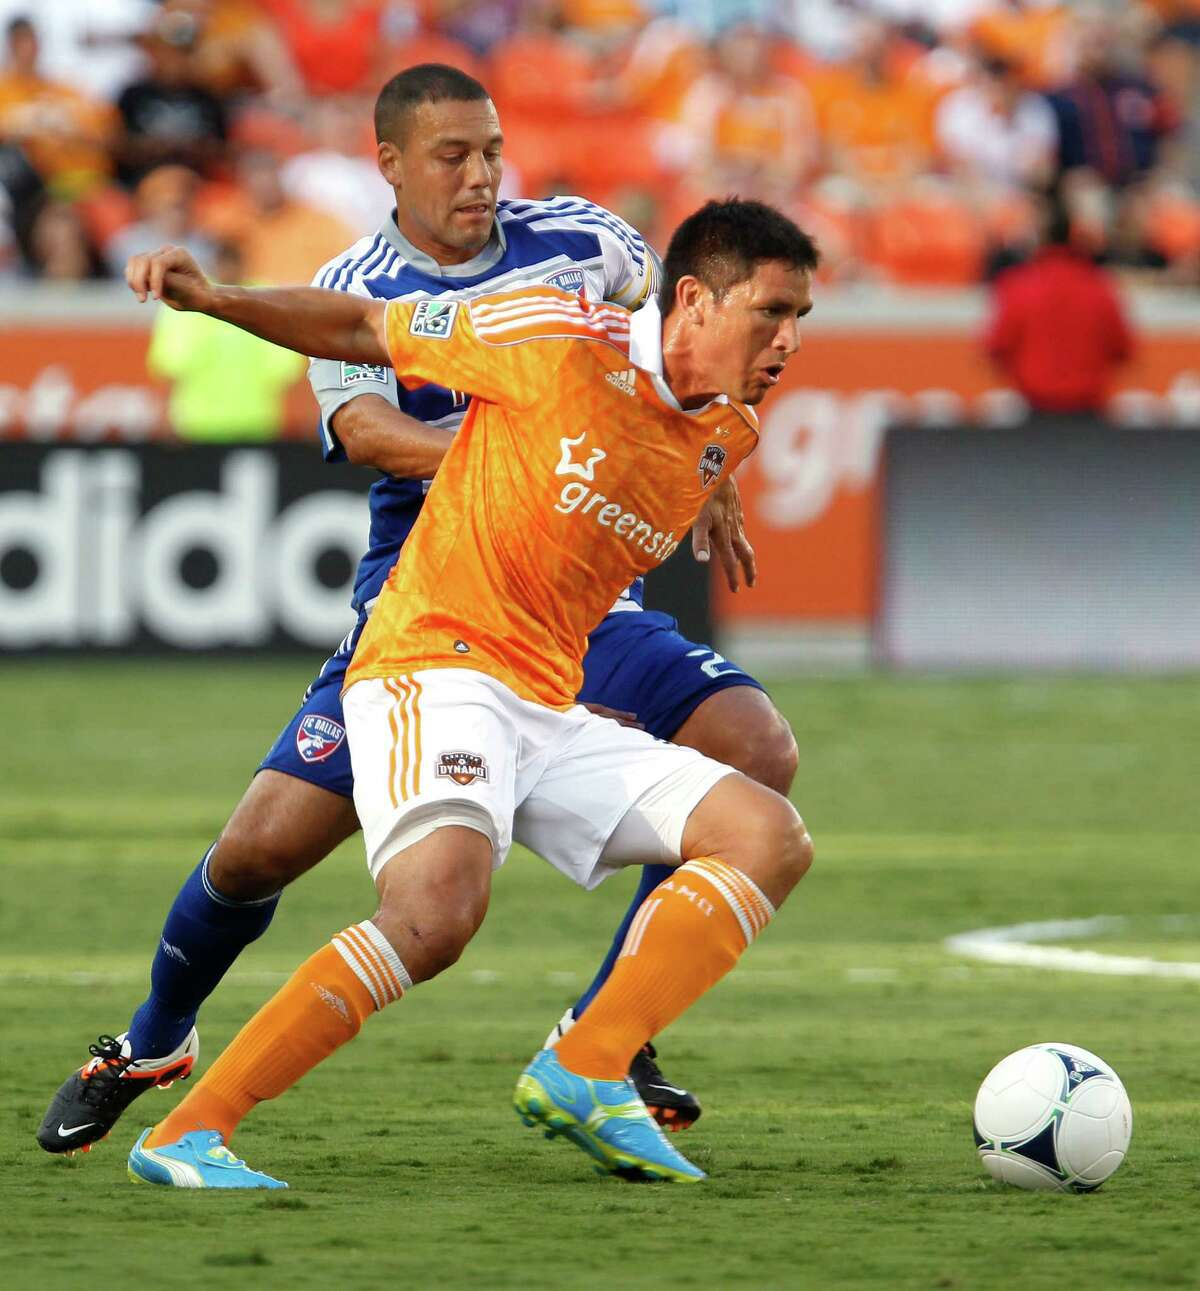 FC Dallas' Fabian Castillo left, and the Houston Dynamo forward Brian Ching chase down the ball during the first half of MLS game action at BBVA Compass Stadium Saturday, June 16, 2012, in Houston. ( James Nielsen / Chronicle )